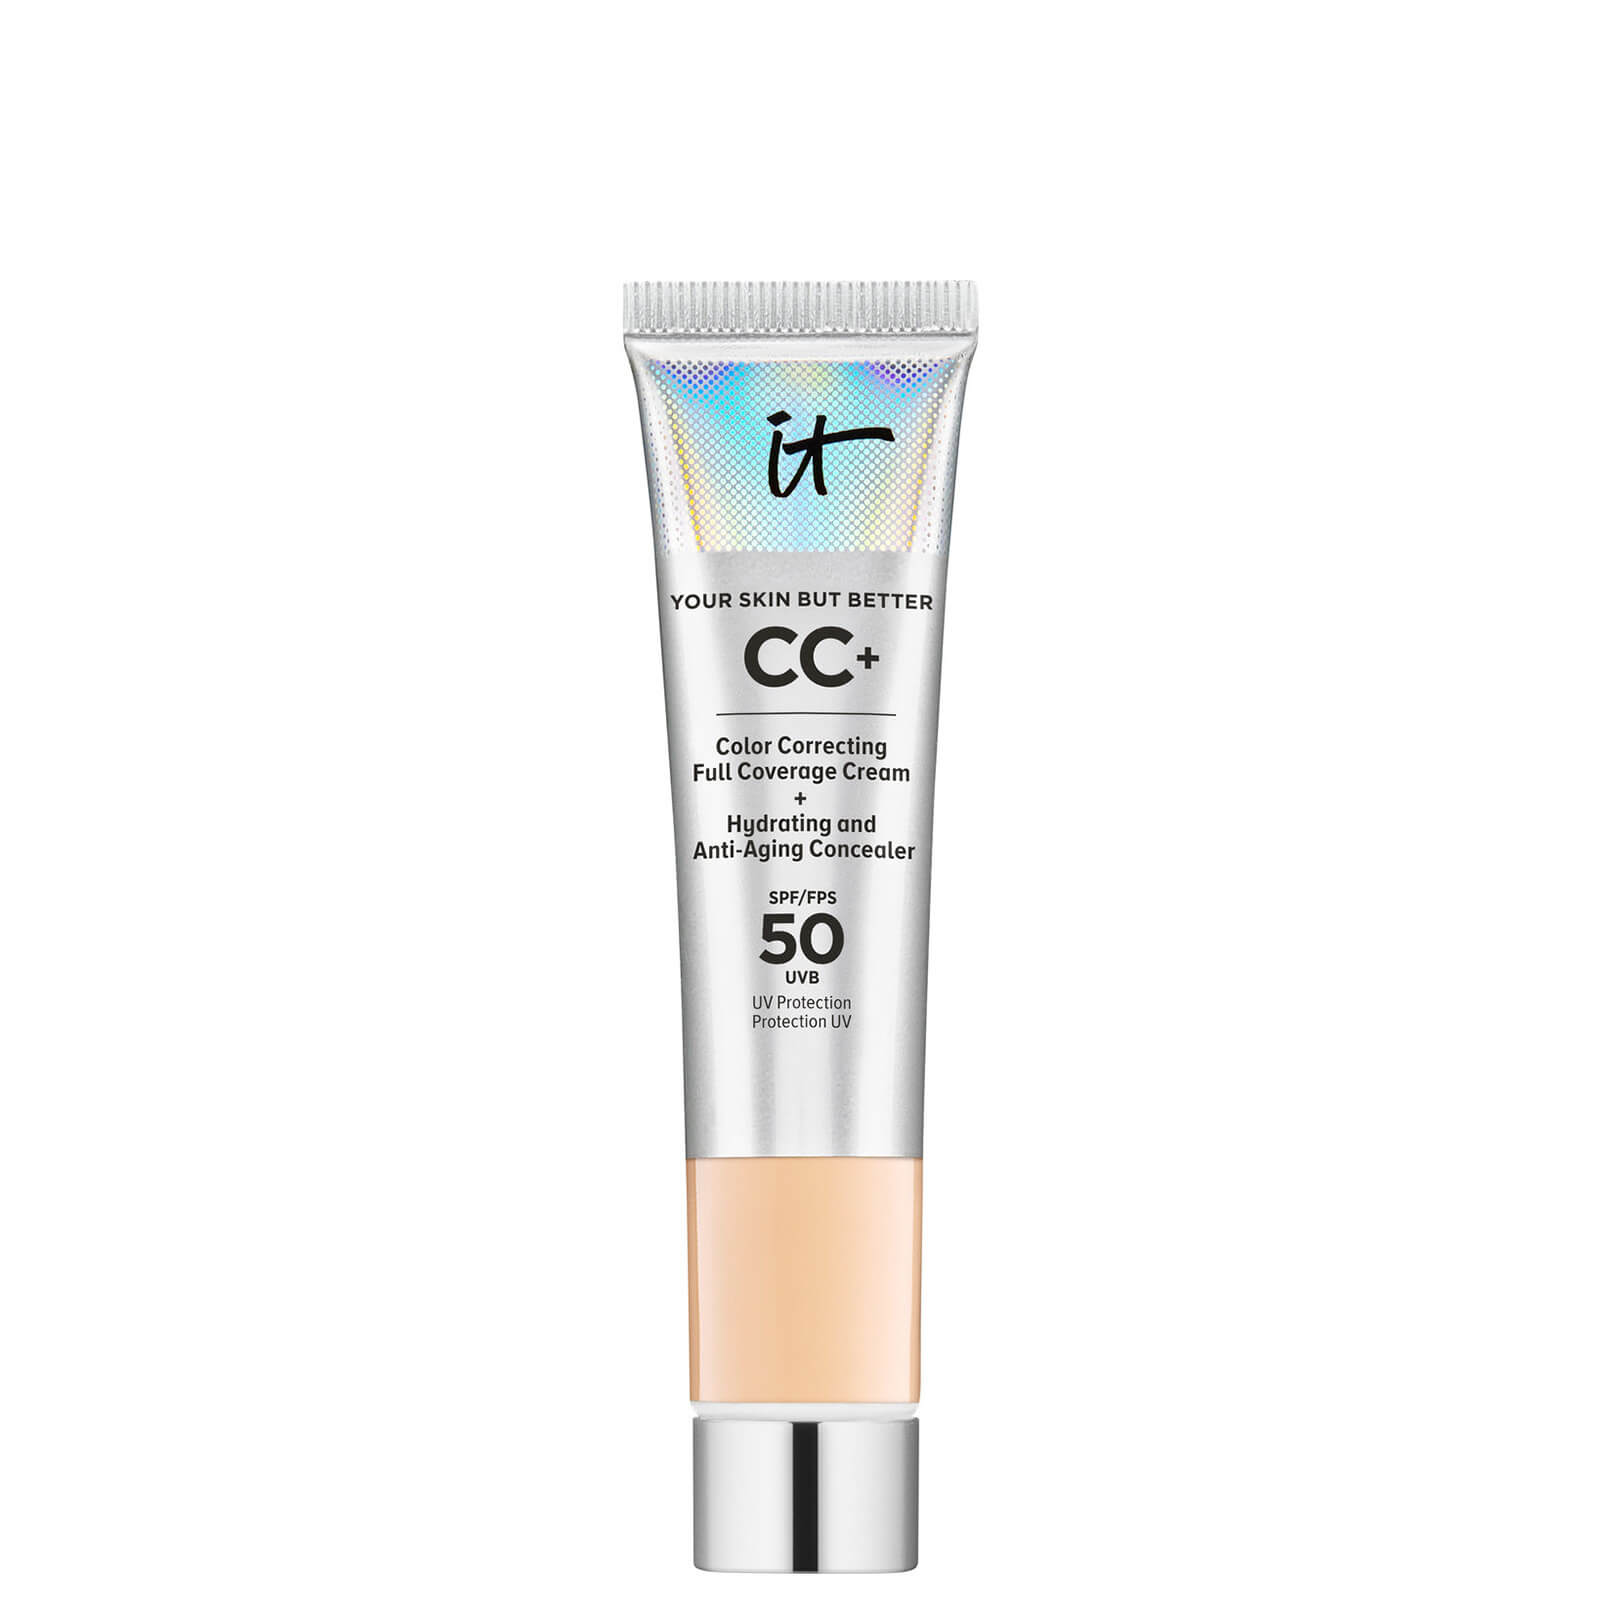 IT Cosmetics Your Skin But Better CC+ Cream with SPF50 12ml (Various Shades) - Medium